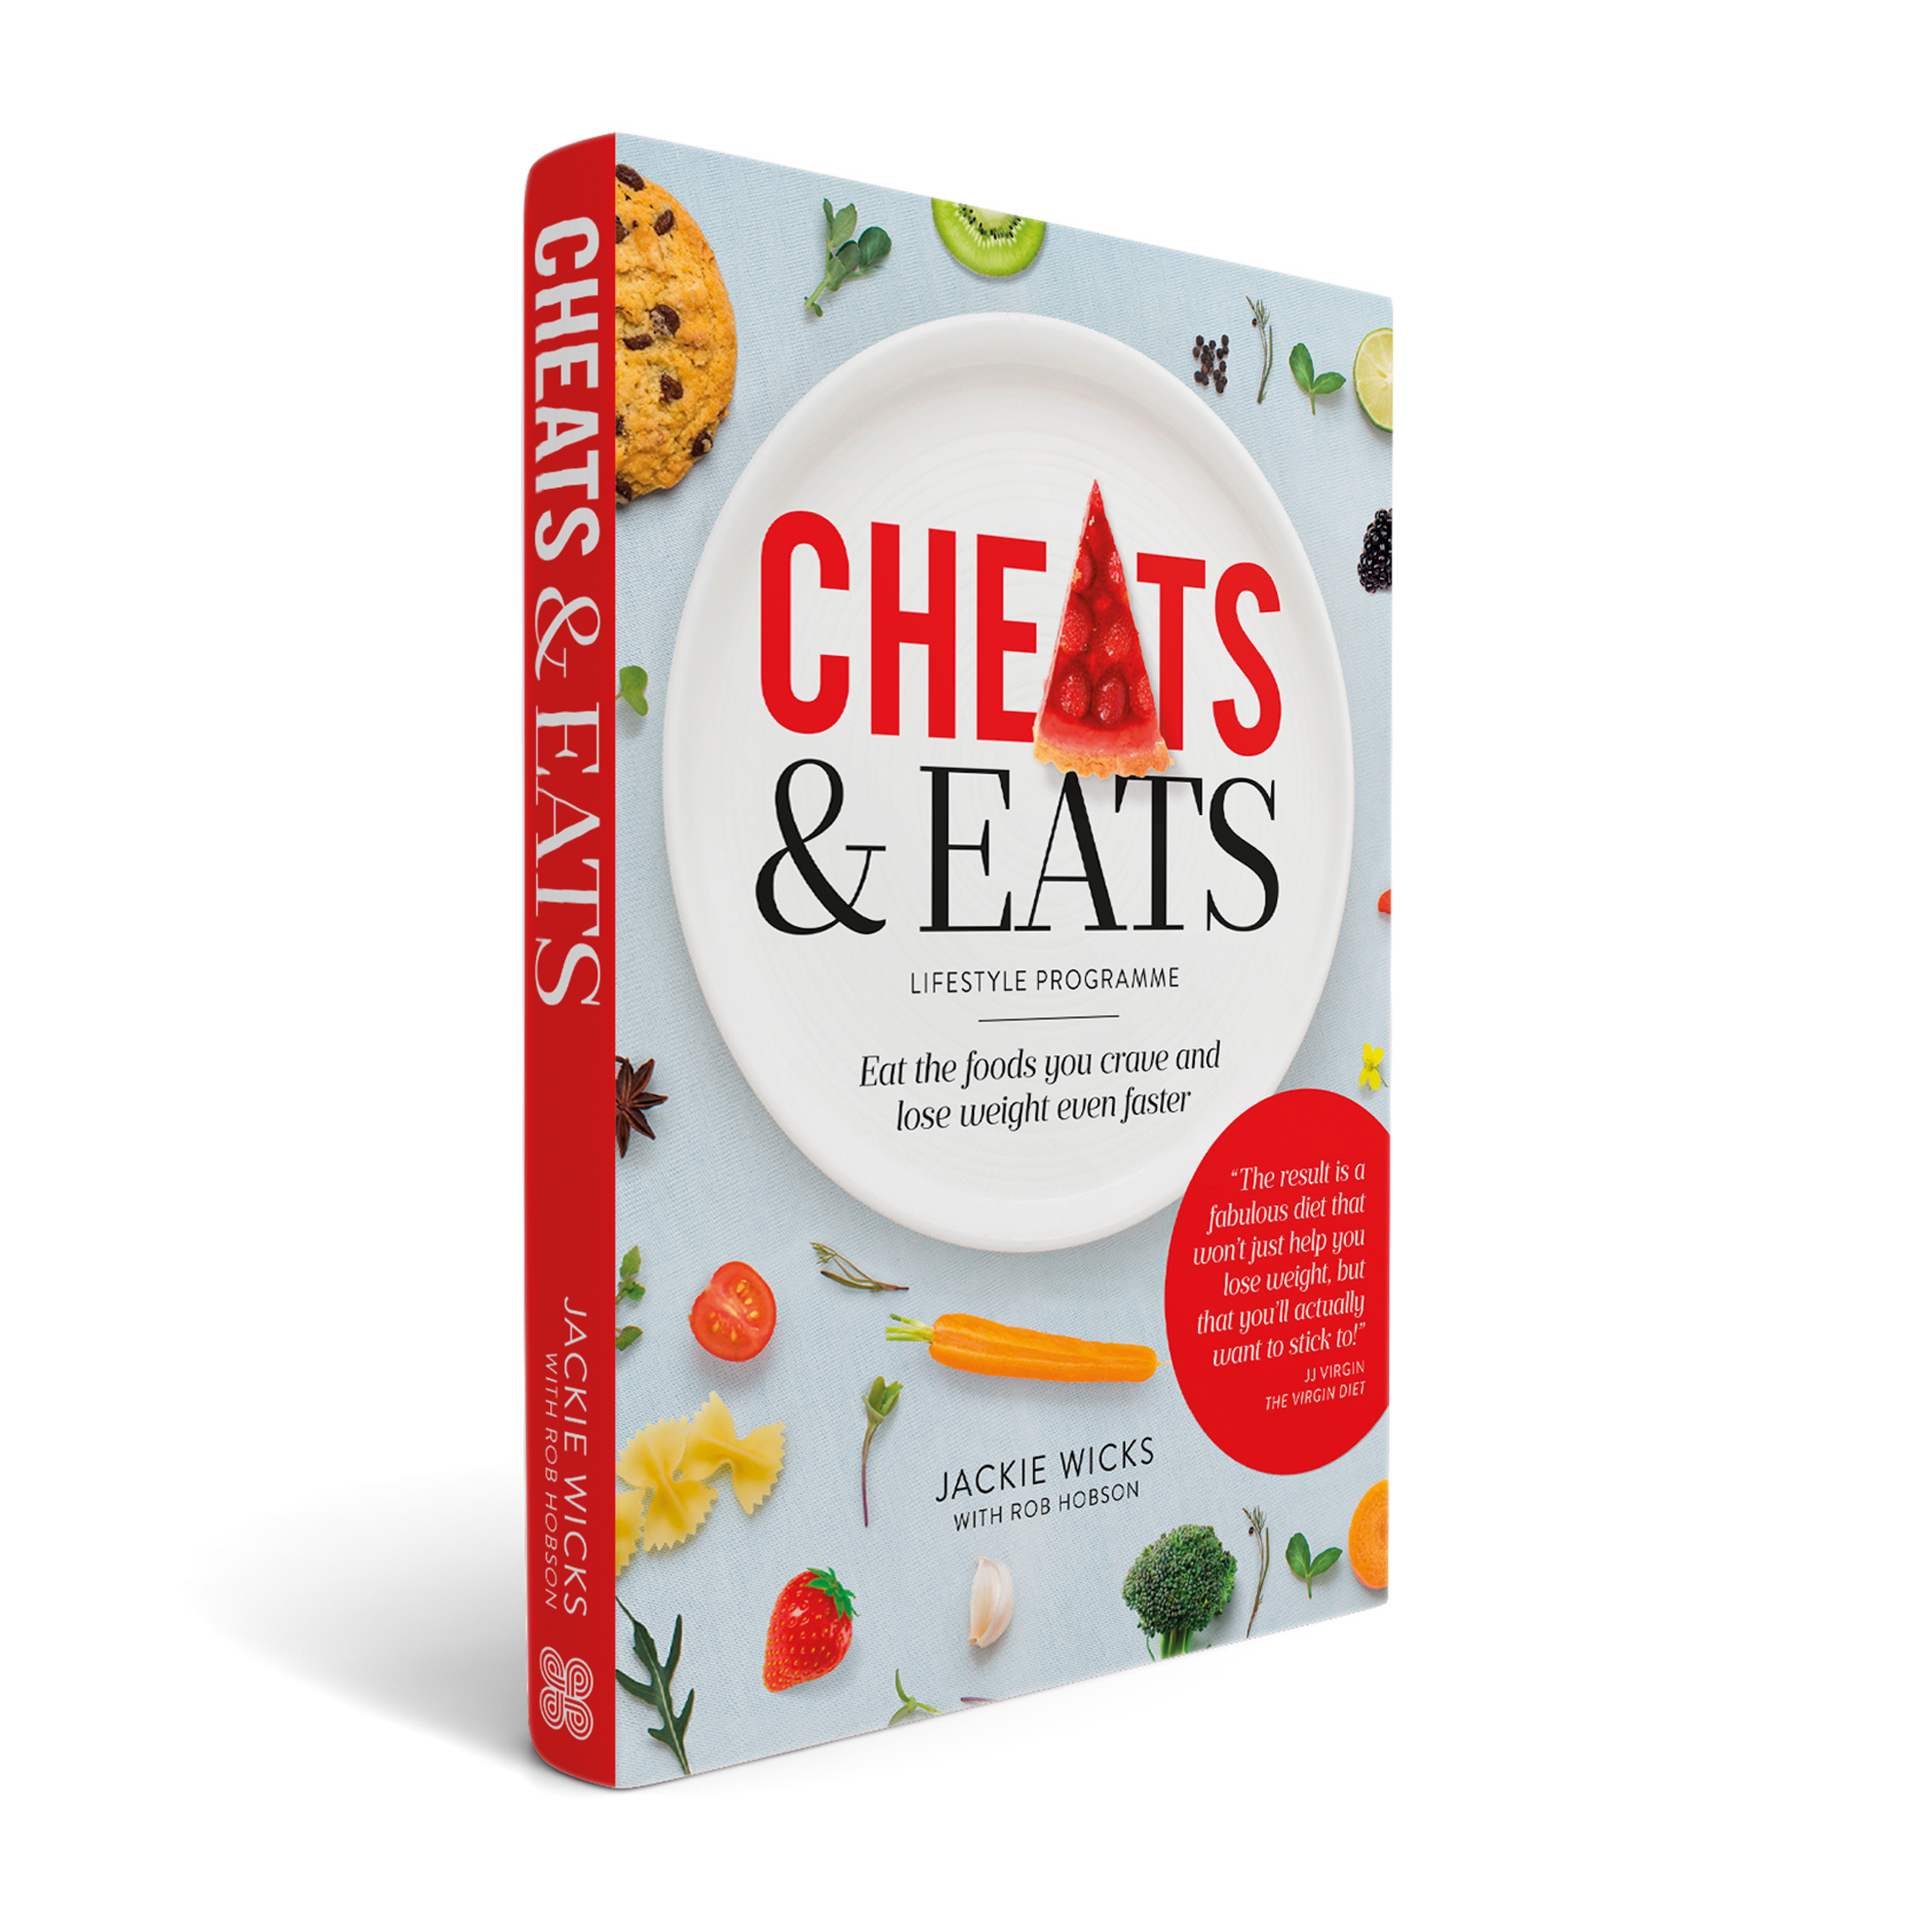 Cheats and Eats Paperback Book